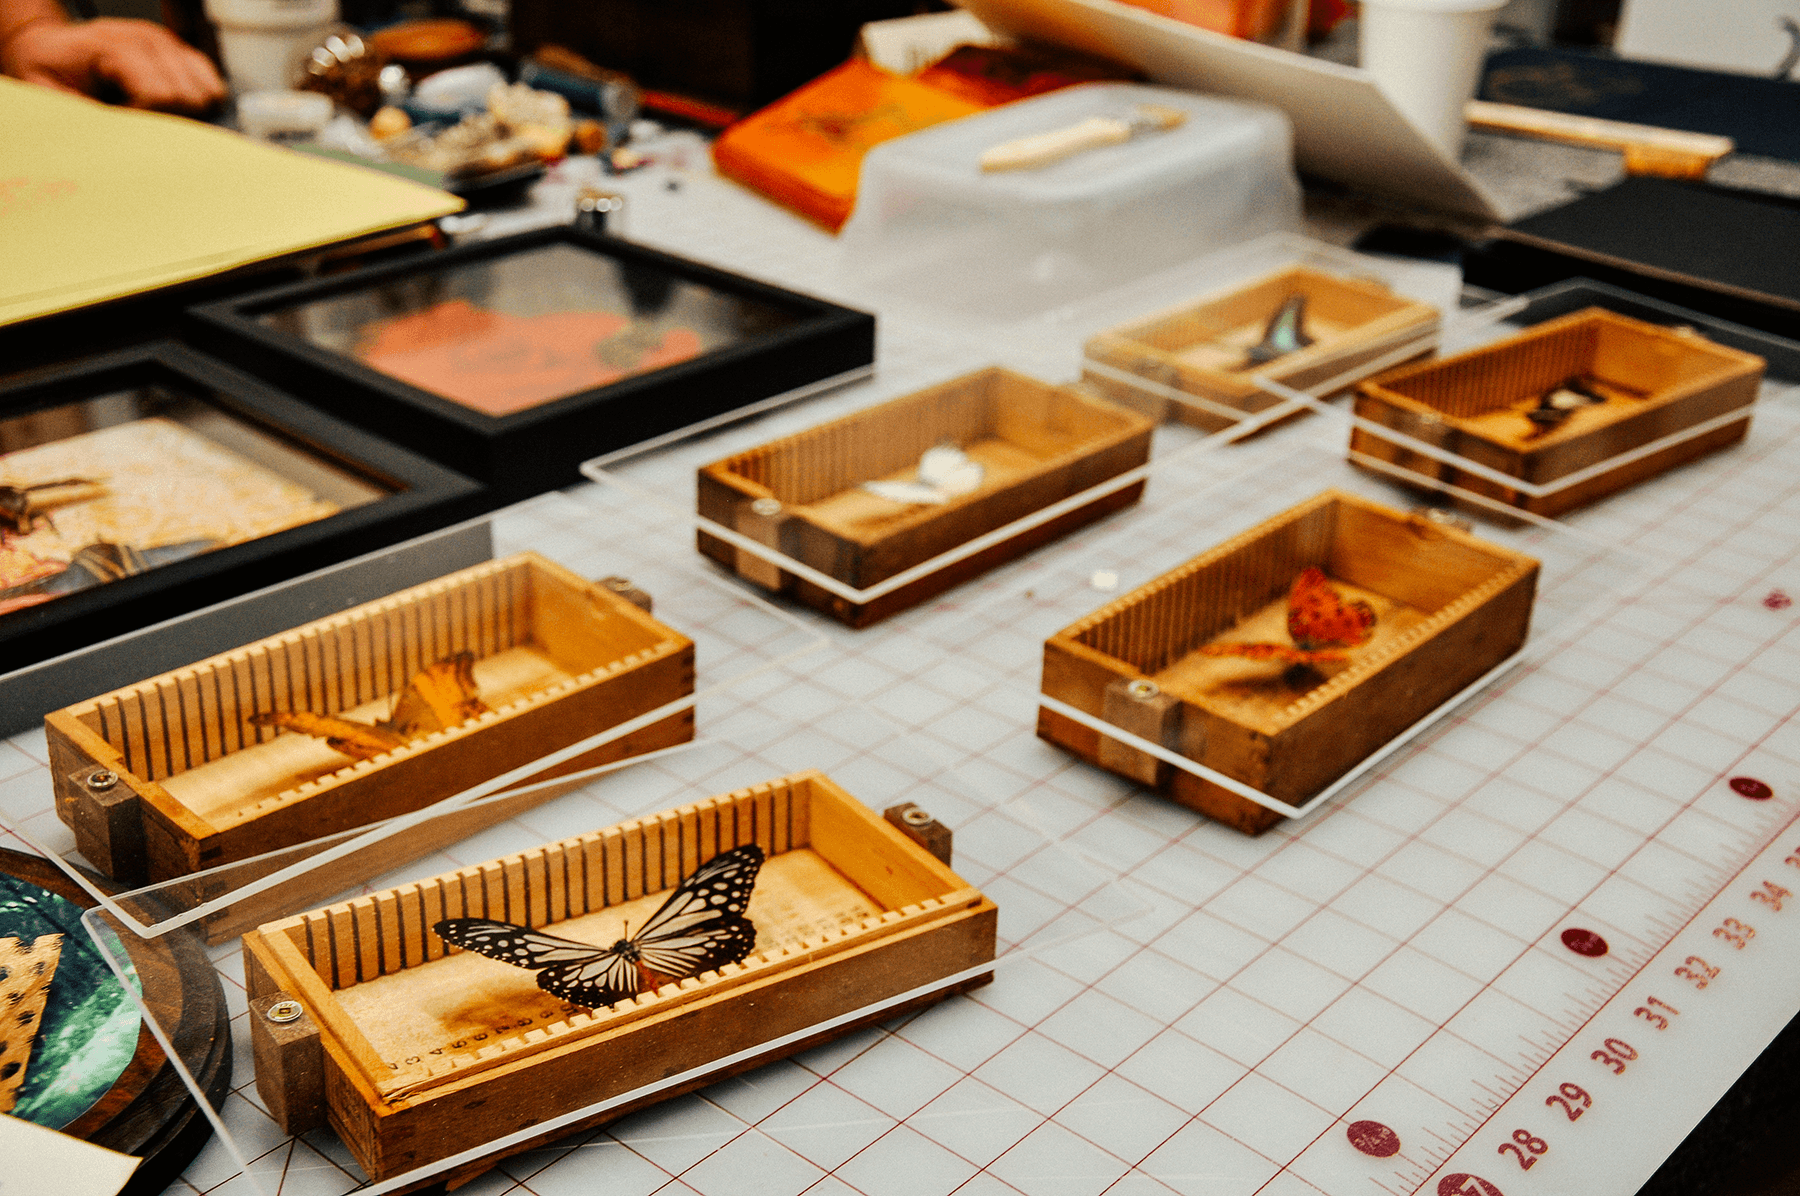 Placing finishing touches to hand collected butterflies mounted in antique microscope slide cases.